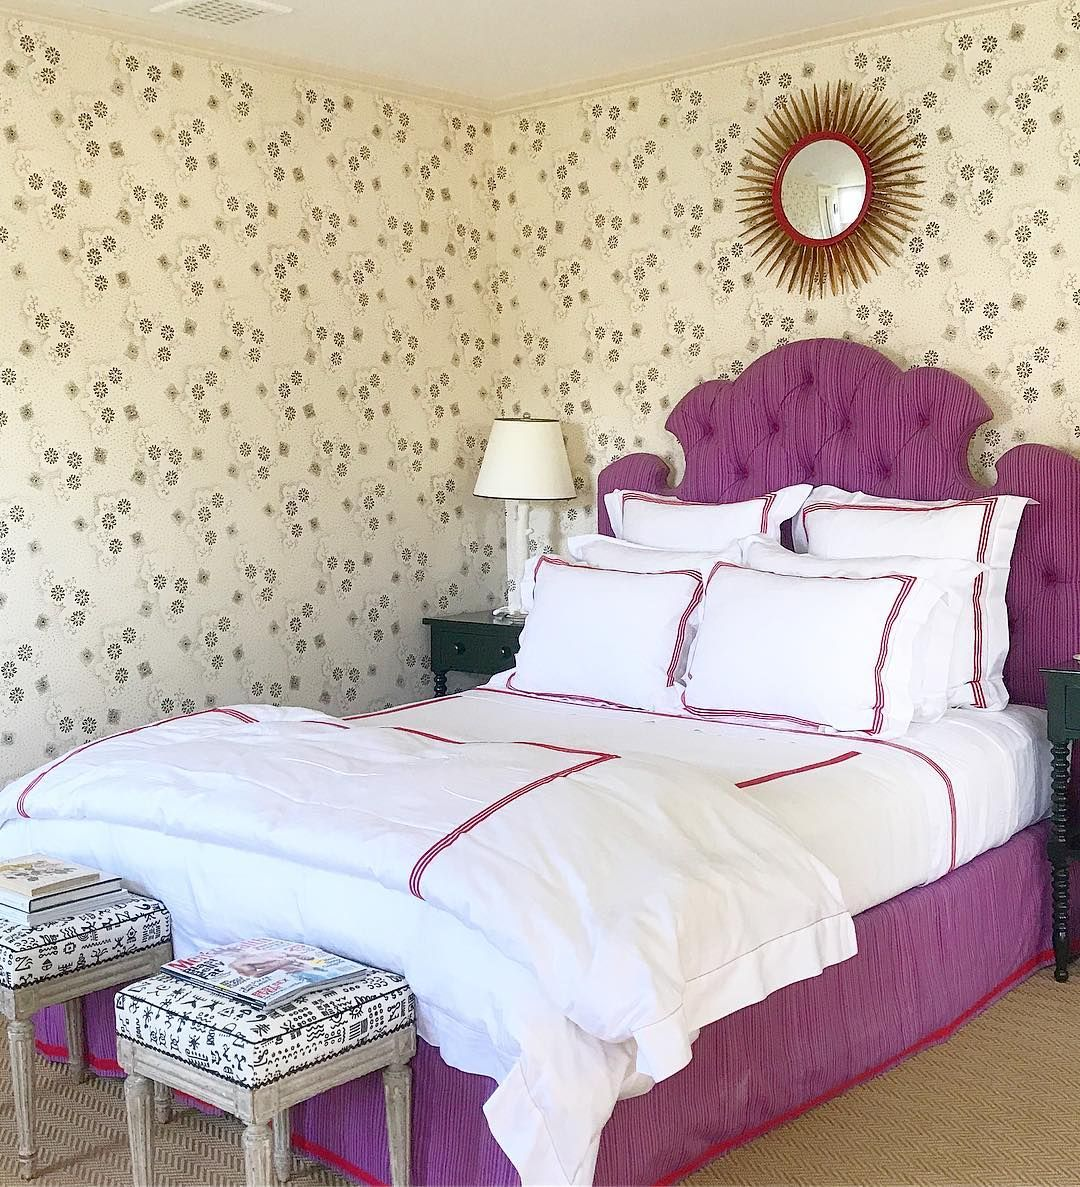 Coveting christopherspitzmiller 's beautiful bedroom and